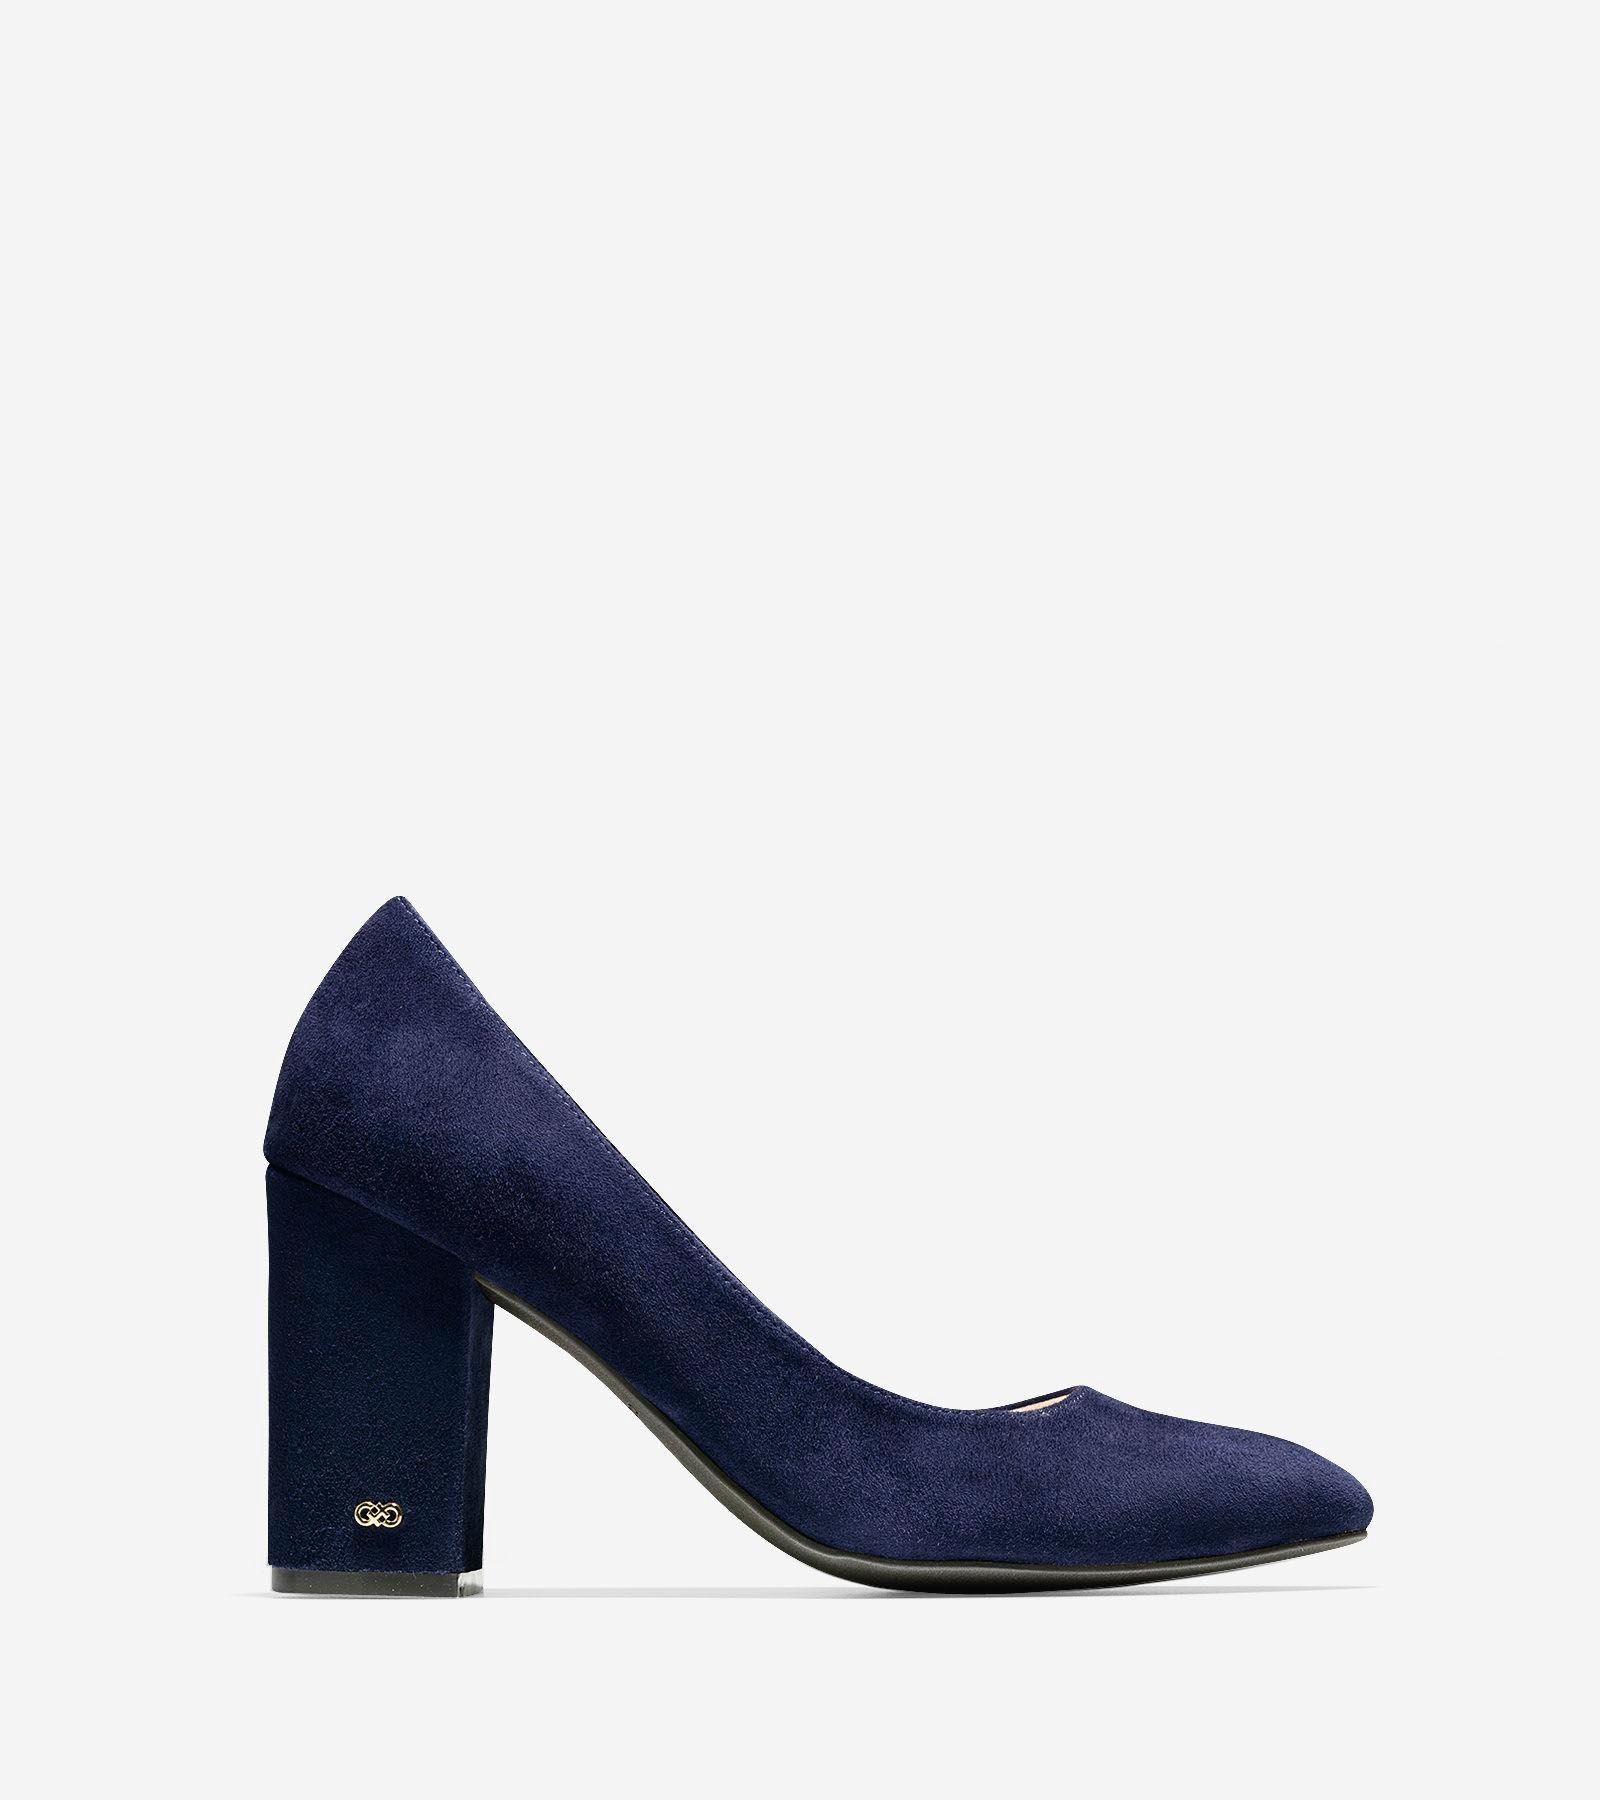 Cole Haan Alanna Pump 85mm Ii   Pointed Toe Suede  Heels In Blue